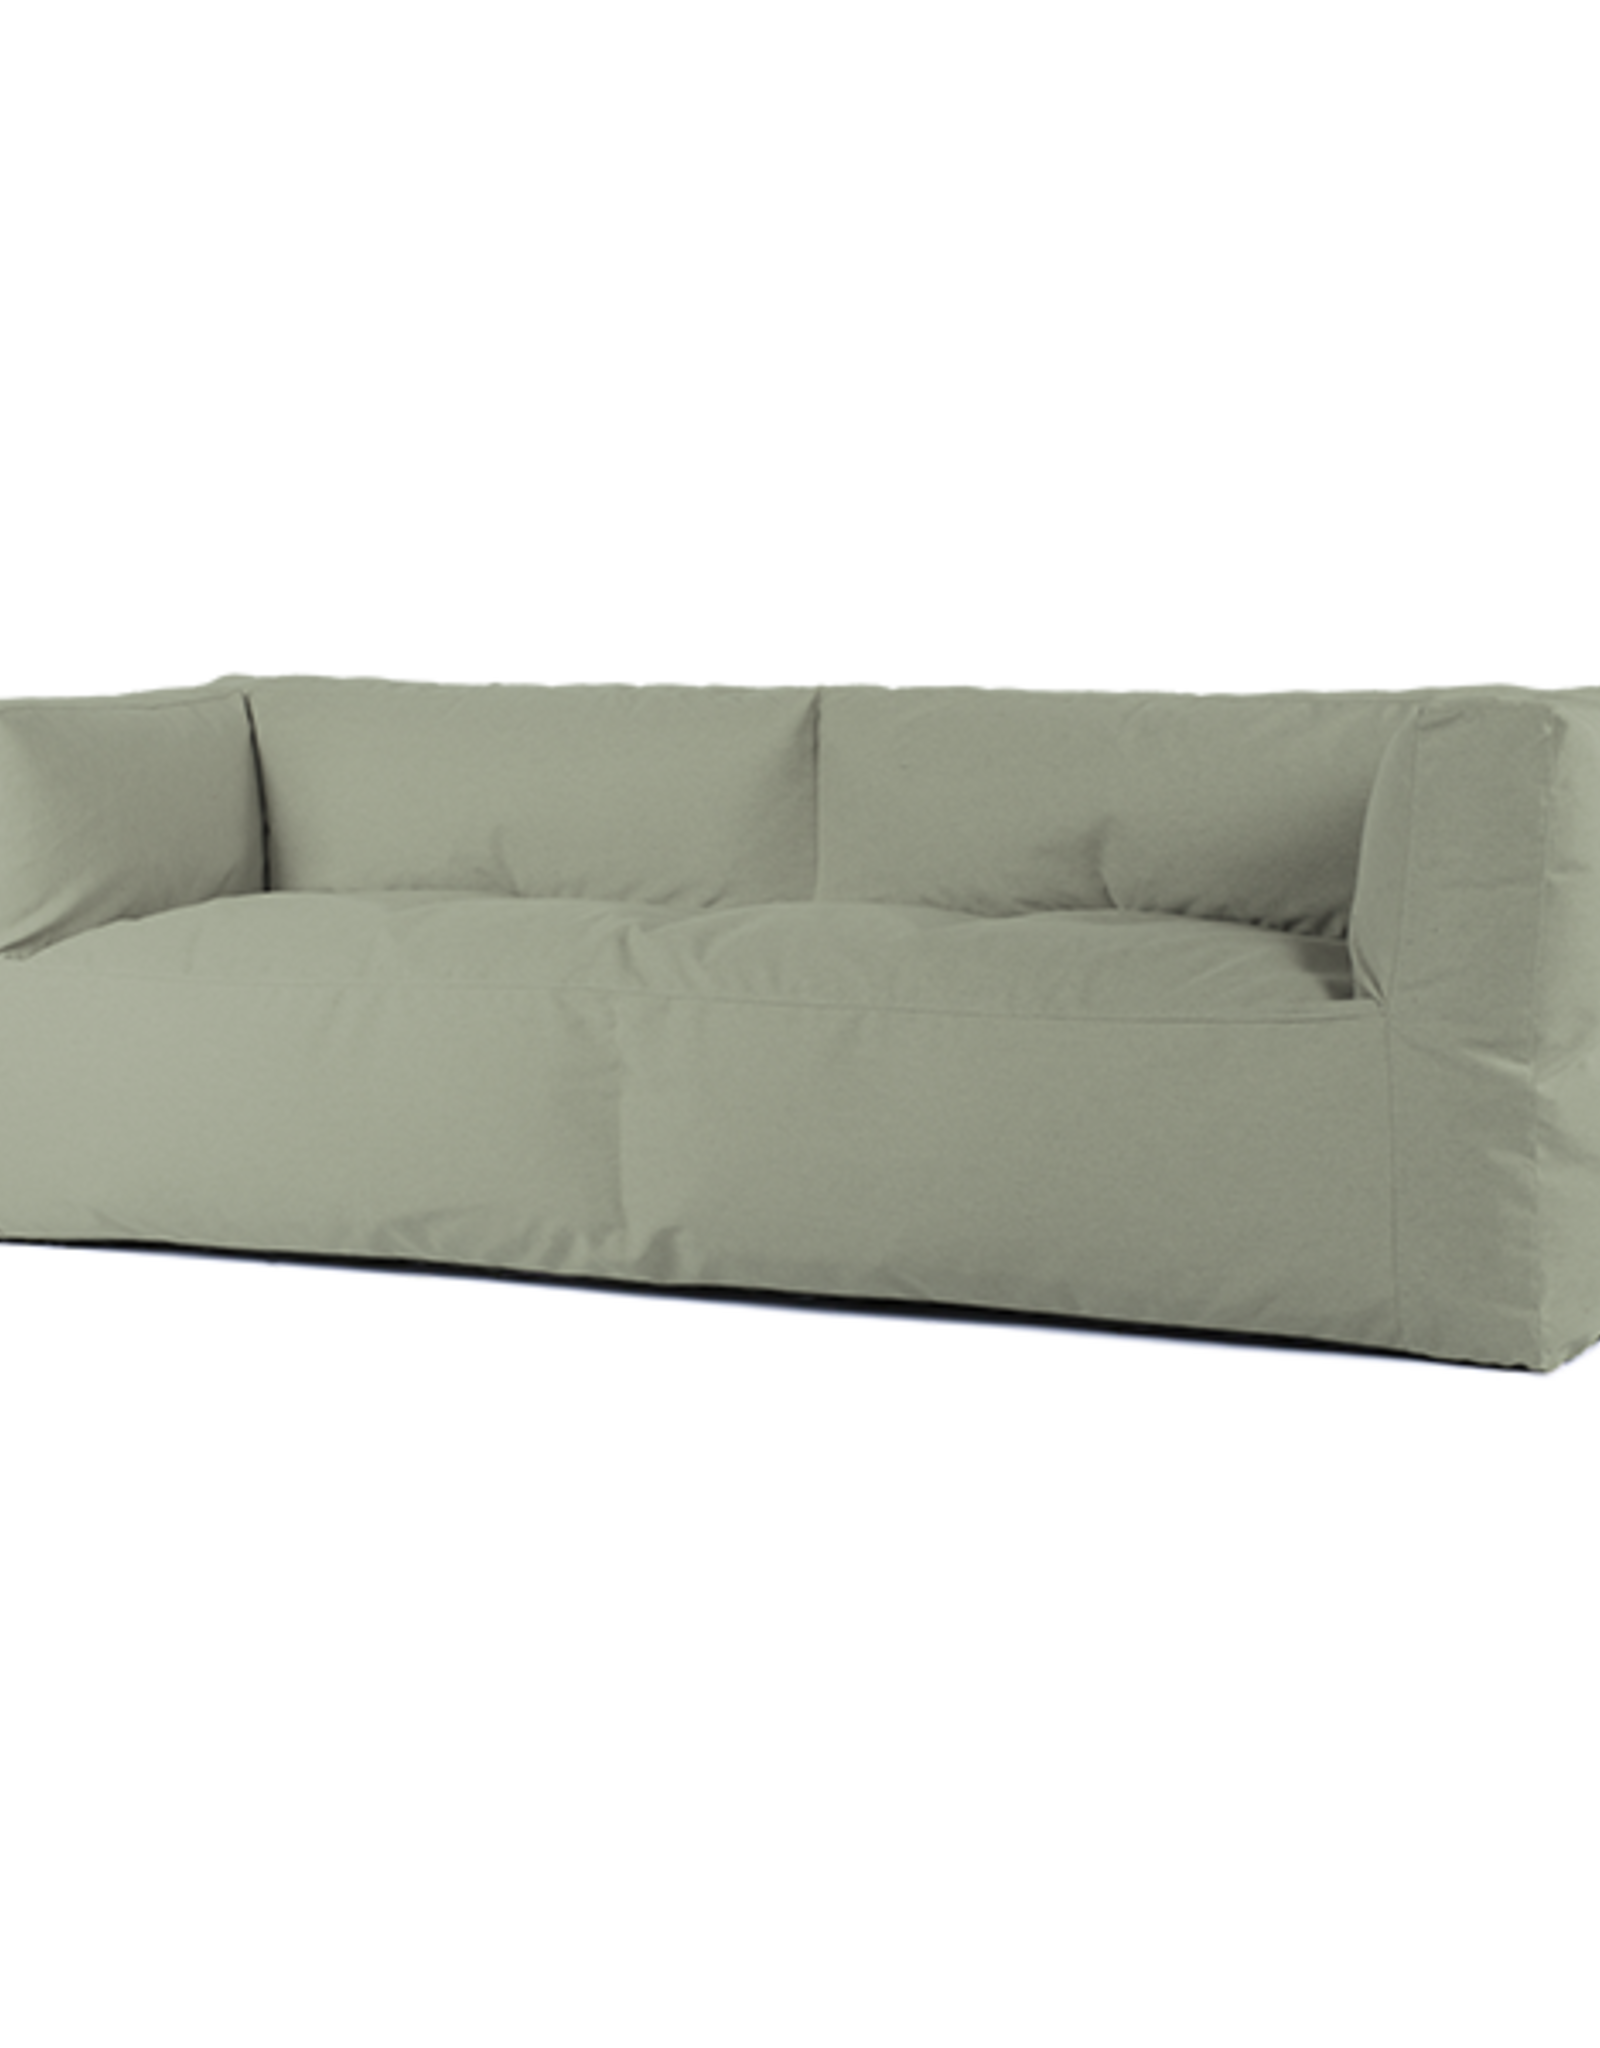 Bryck Bryck - couch 3 zit - Ecocollection - green